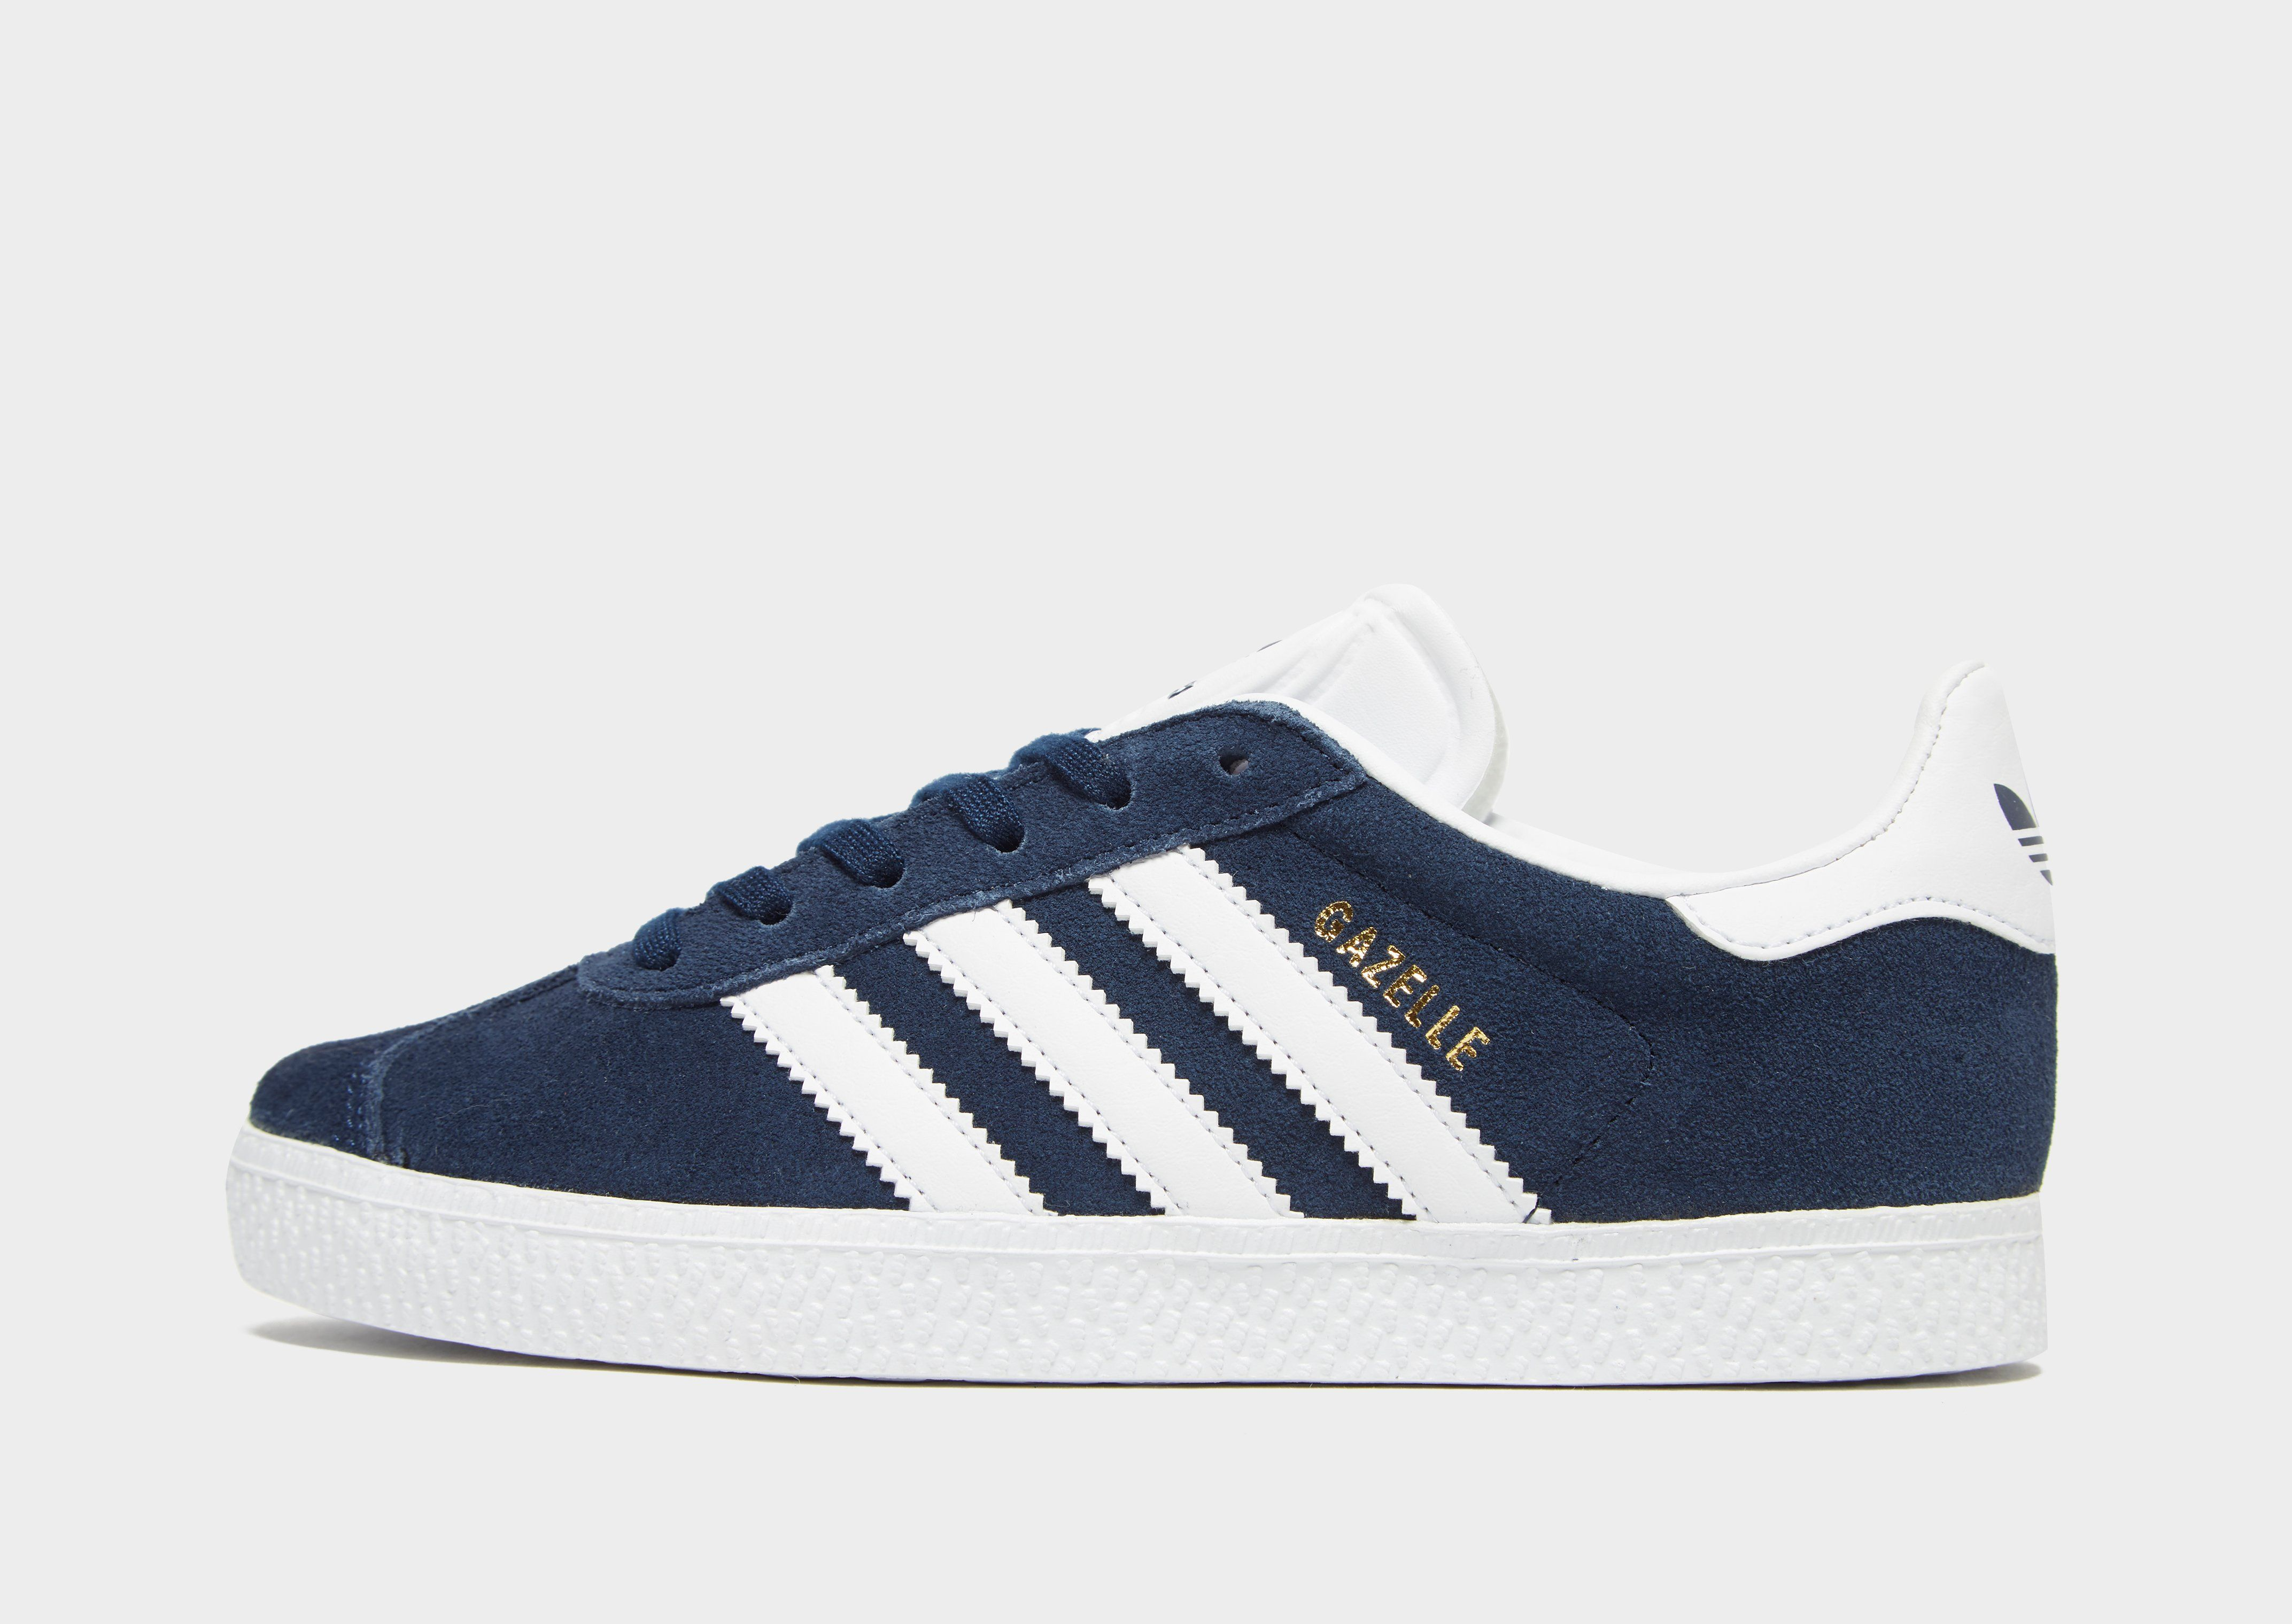 adidas gazelle sort, ADIDAS PERFORMANCE EDGE LUX Sneakers